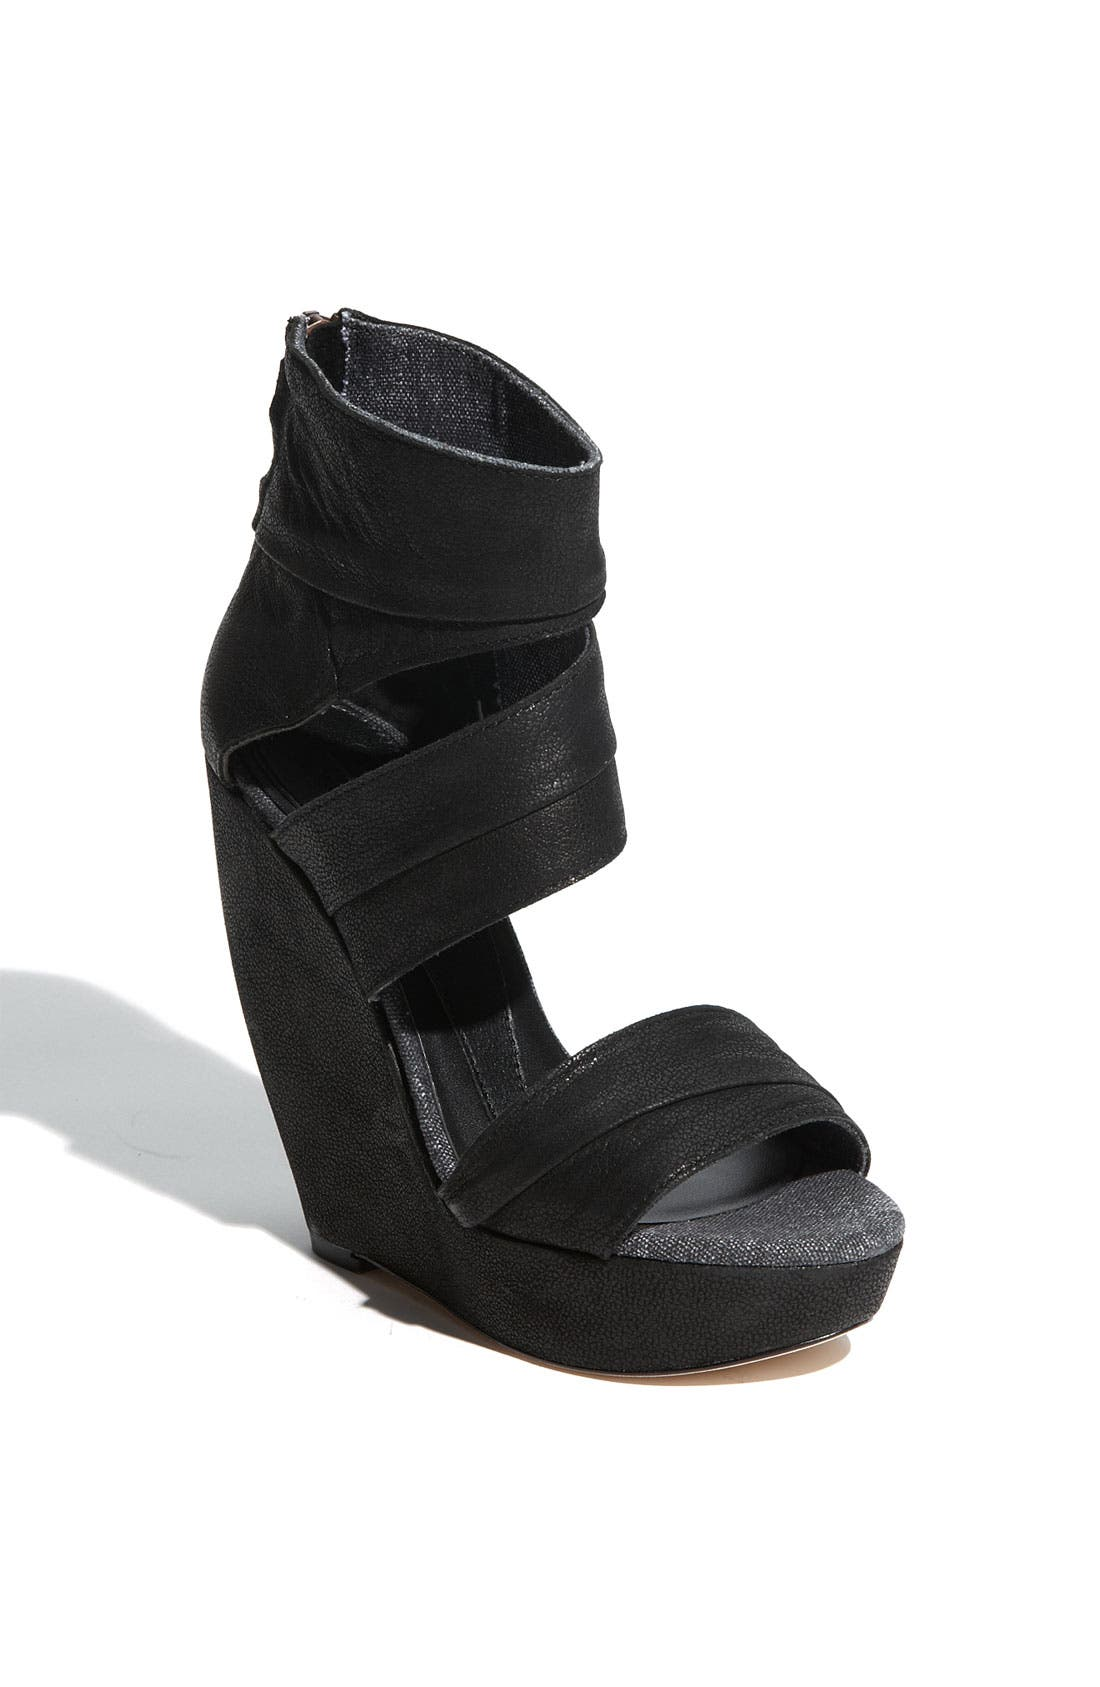 Alternate Image 1 Selected - Joe's 'Lynn' Cuff Sandal